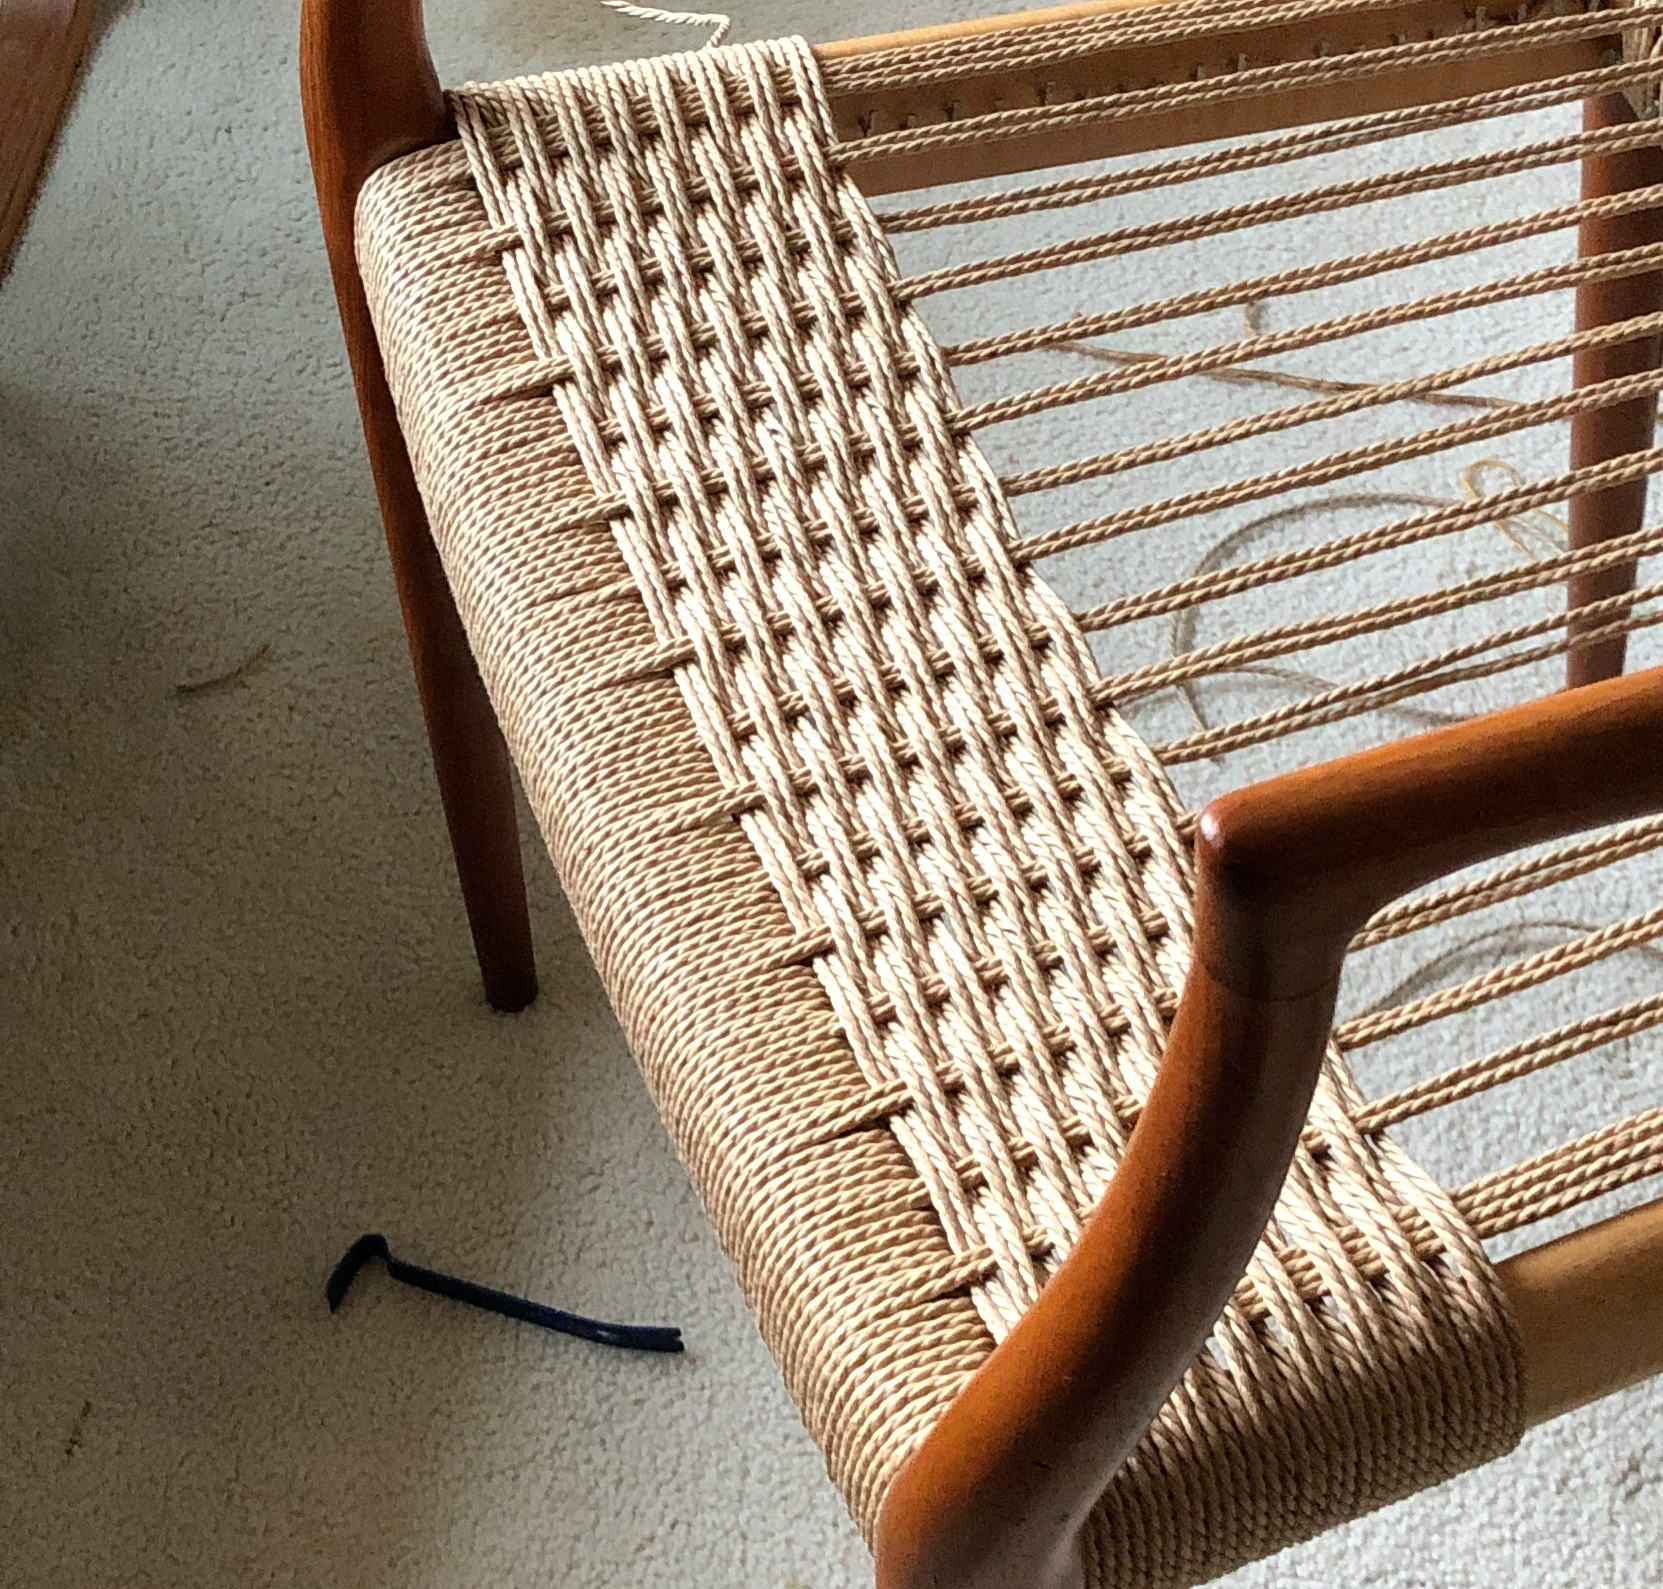 Half done Niels Otto Møller chair. Look at those beautiful curves!  😍